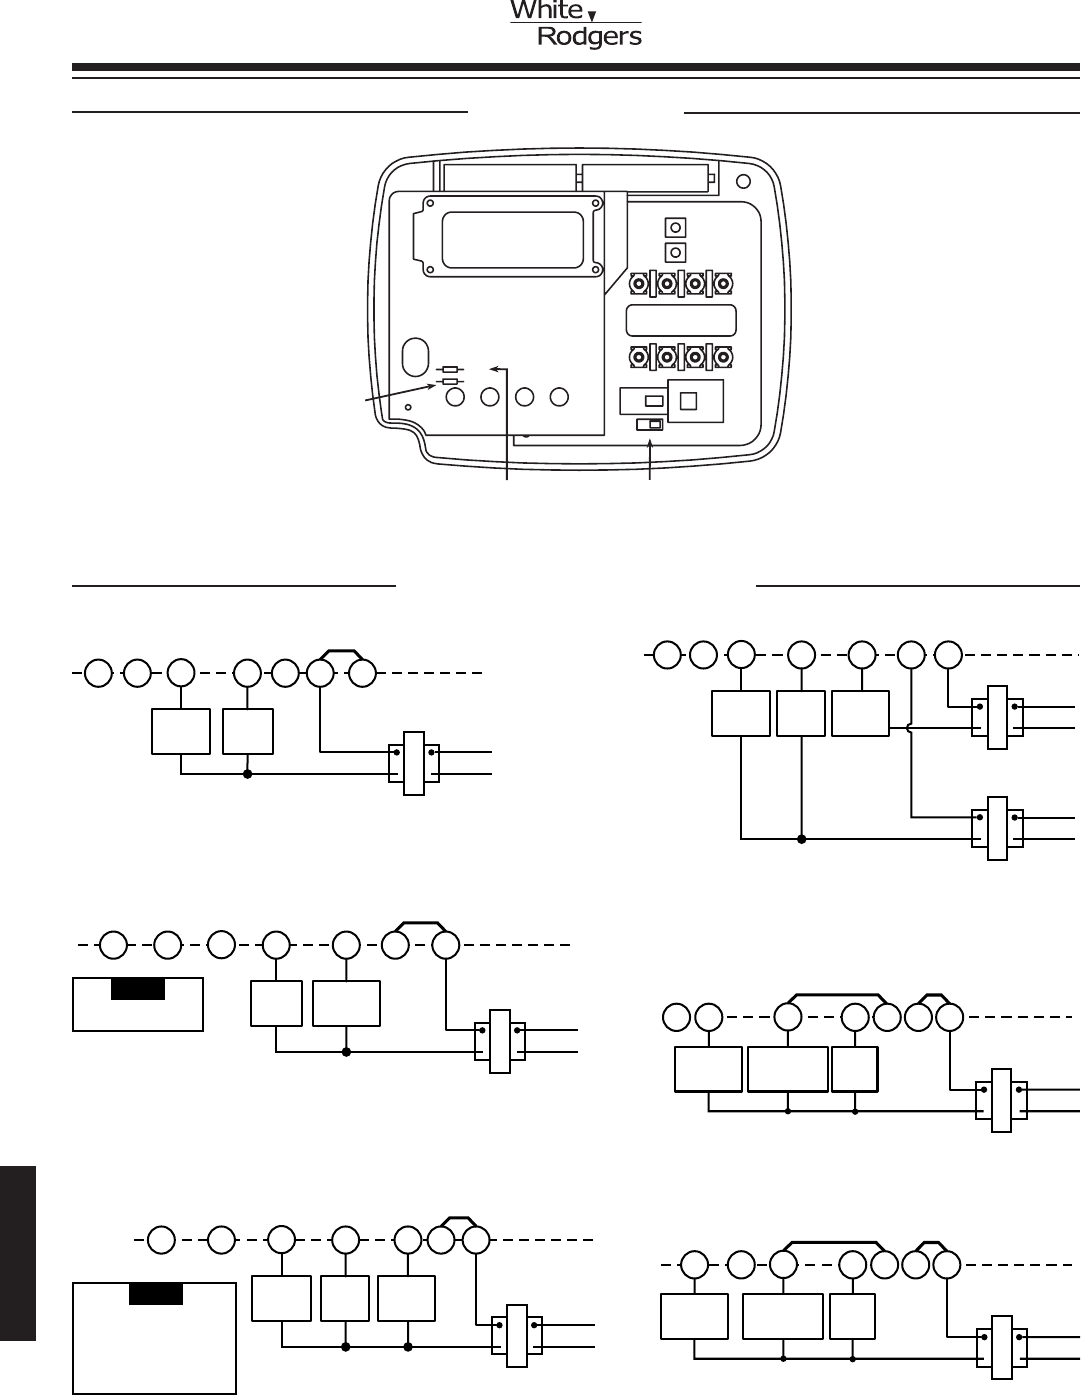 498fbc67 ccce 4ce2 8ff4 ea2dcff5d789 bg1 emerson thermostat 1f78 151 user guide manualsonline com wiring diagram for white rodgers thermostat at reclaimingppi.co